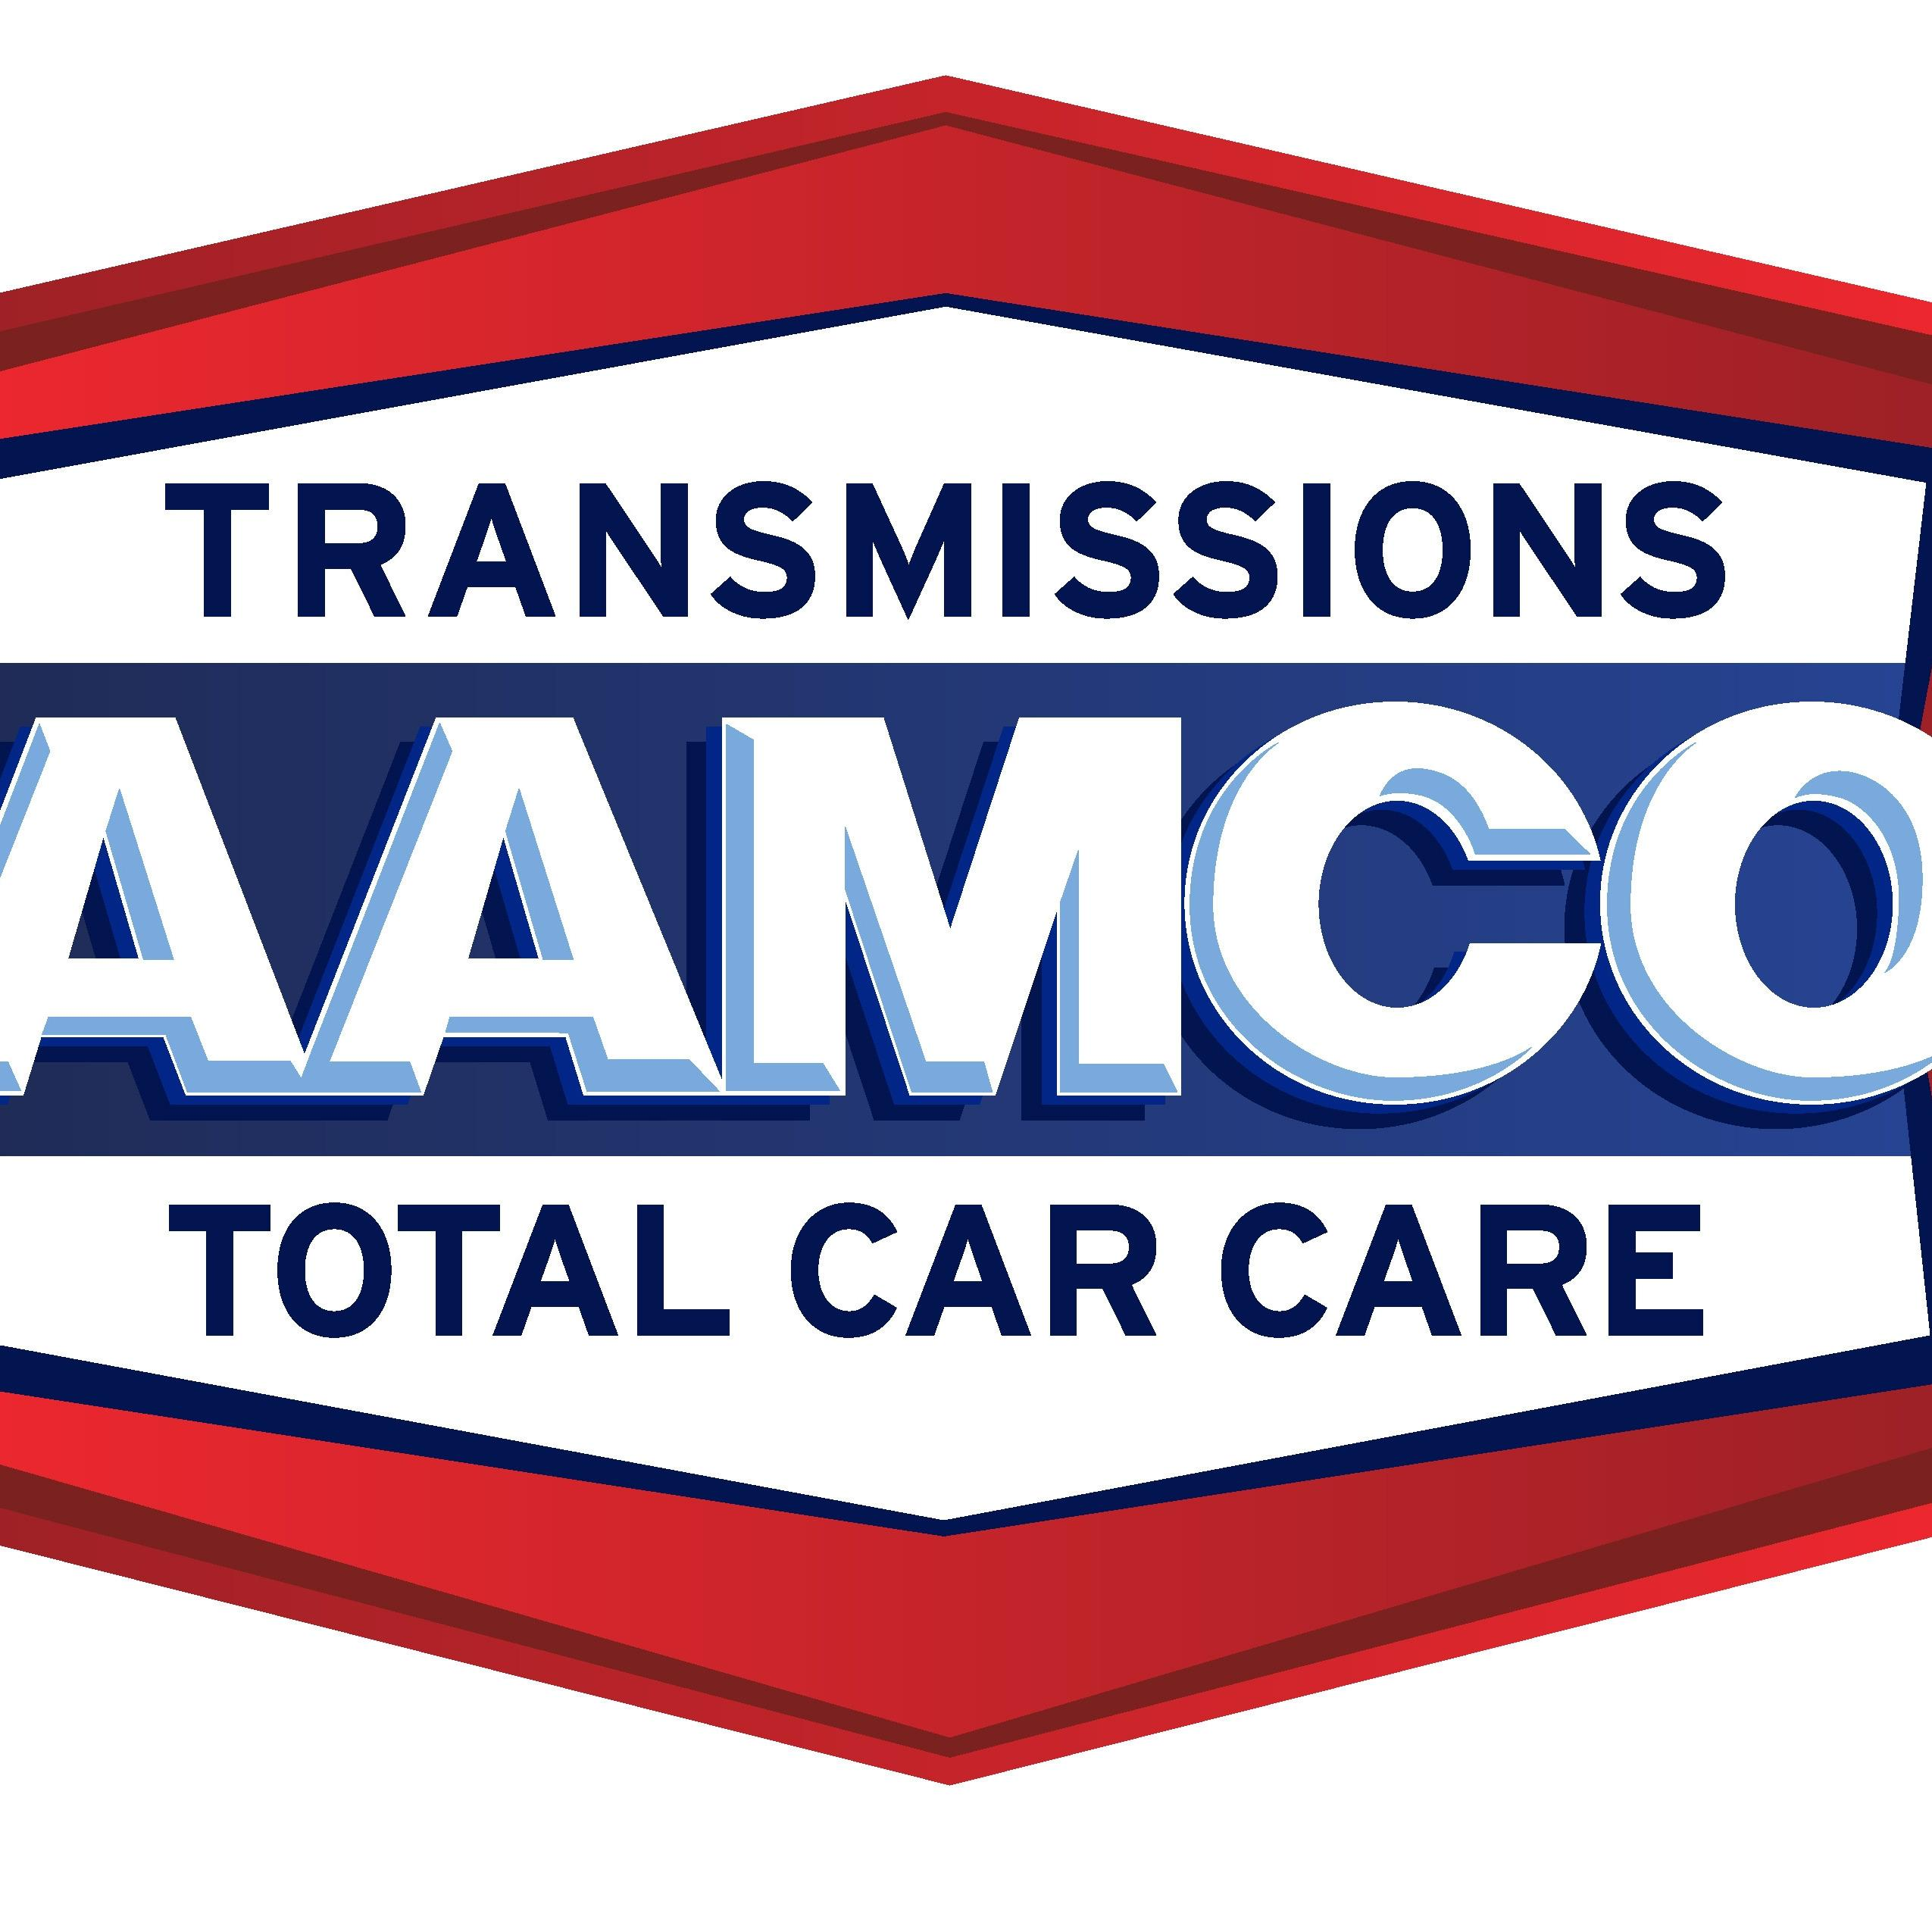 AAMCO Transmissions and Total Car Care - Winter Park, FL - General Auto Repair & Service